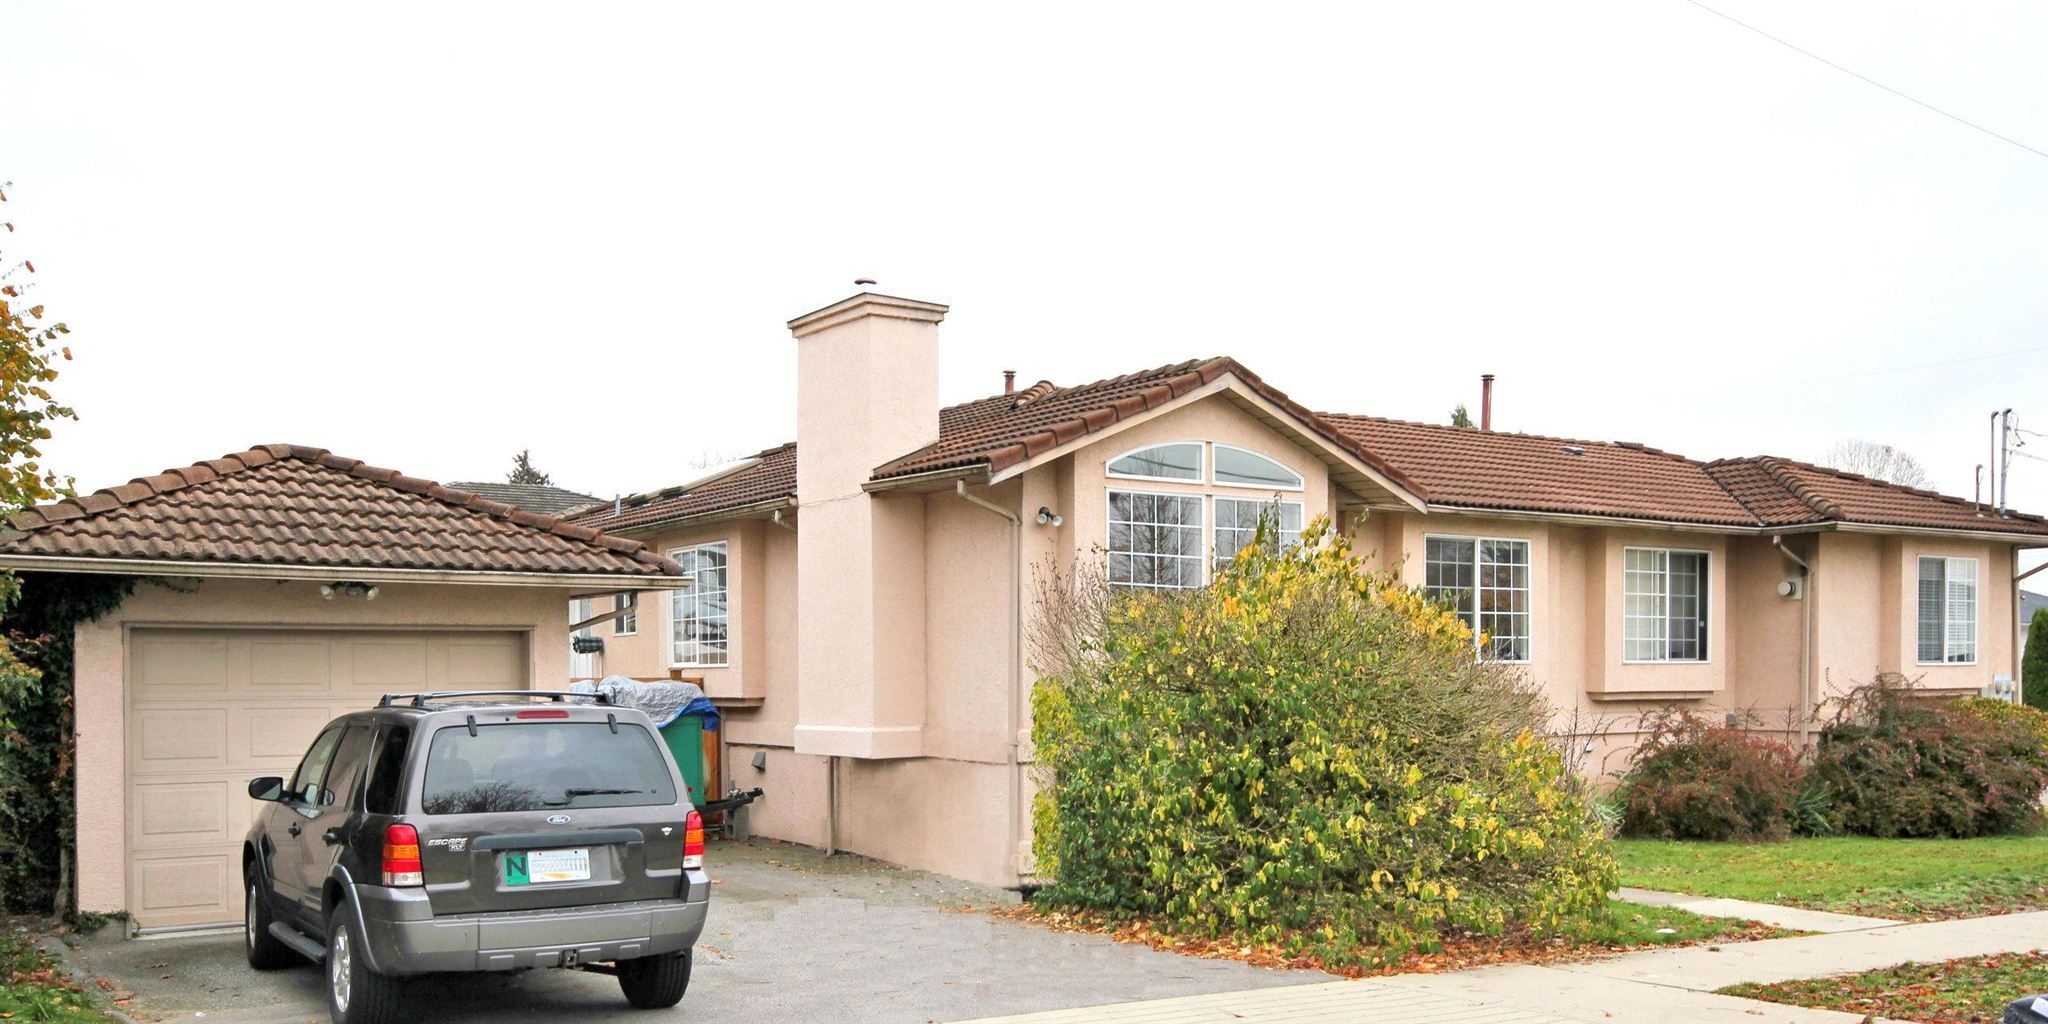 Main Photo: 7456 MARY Avenue in Burnaby: Edmonds BE 1/2 Duplex for sale (Burnaby East)  : MLS®# R2602810